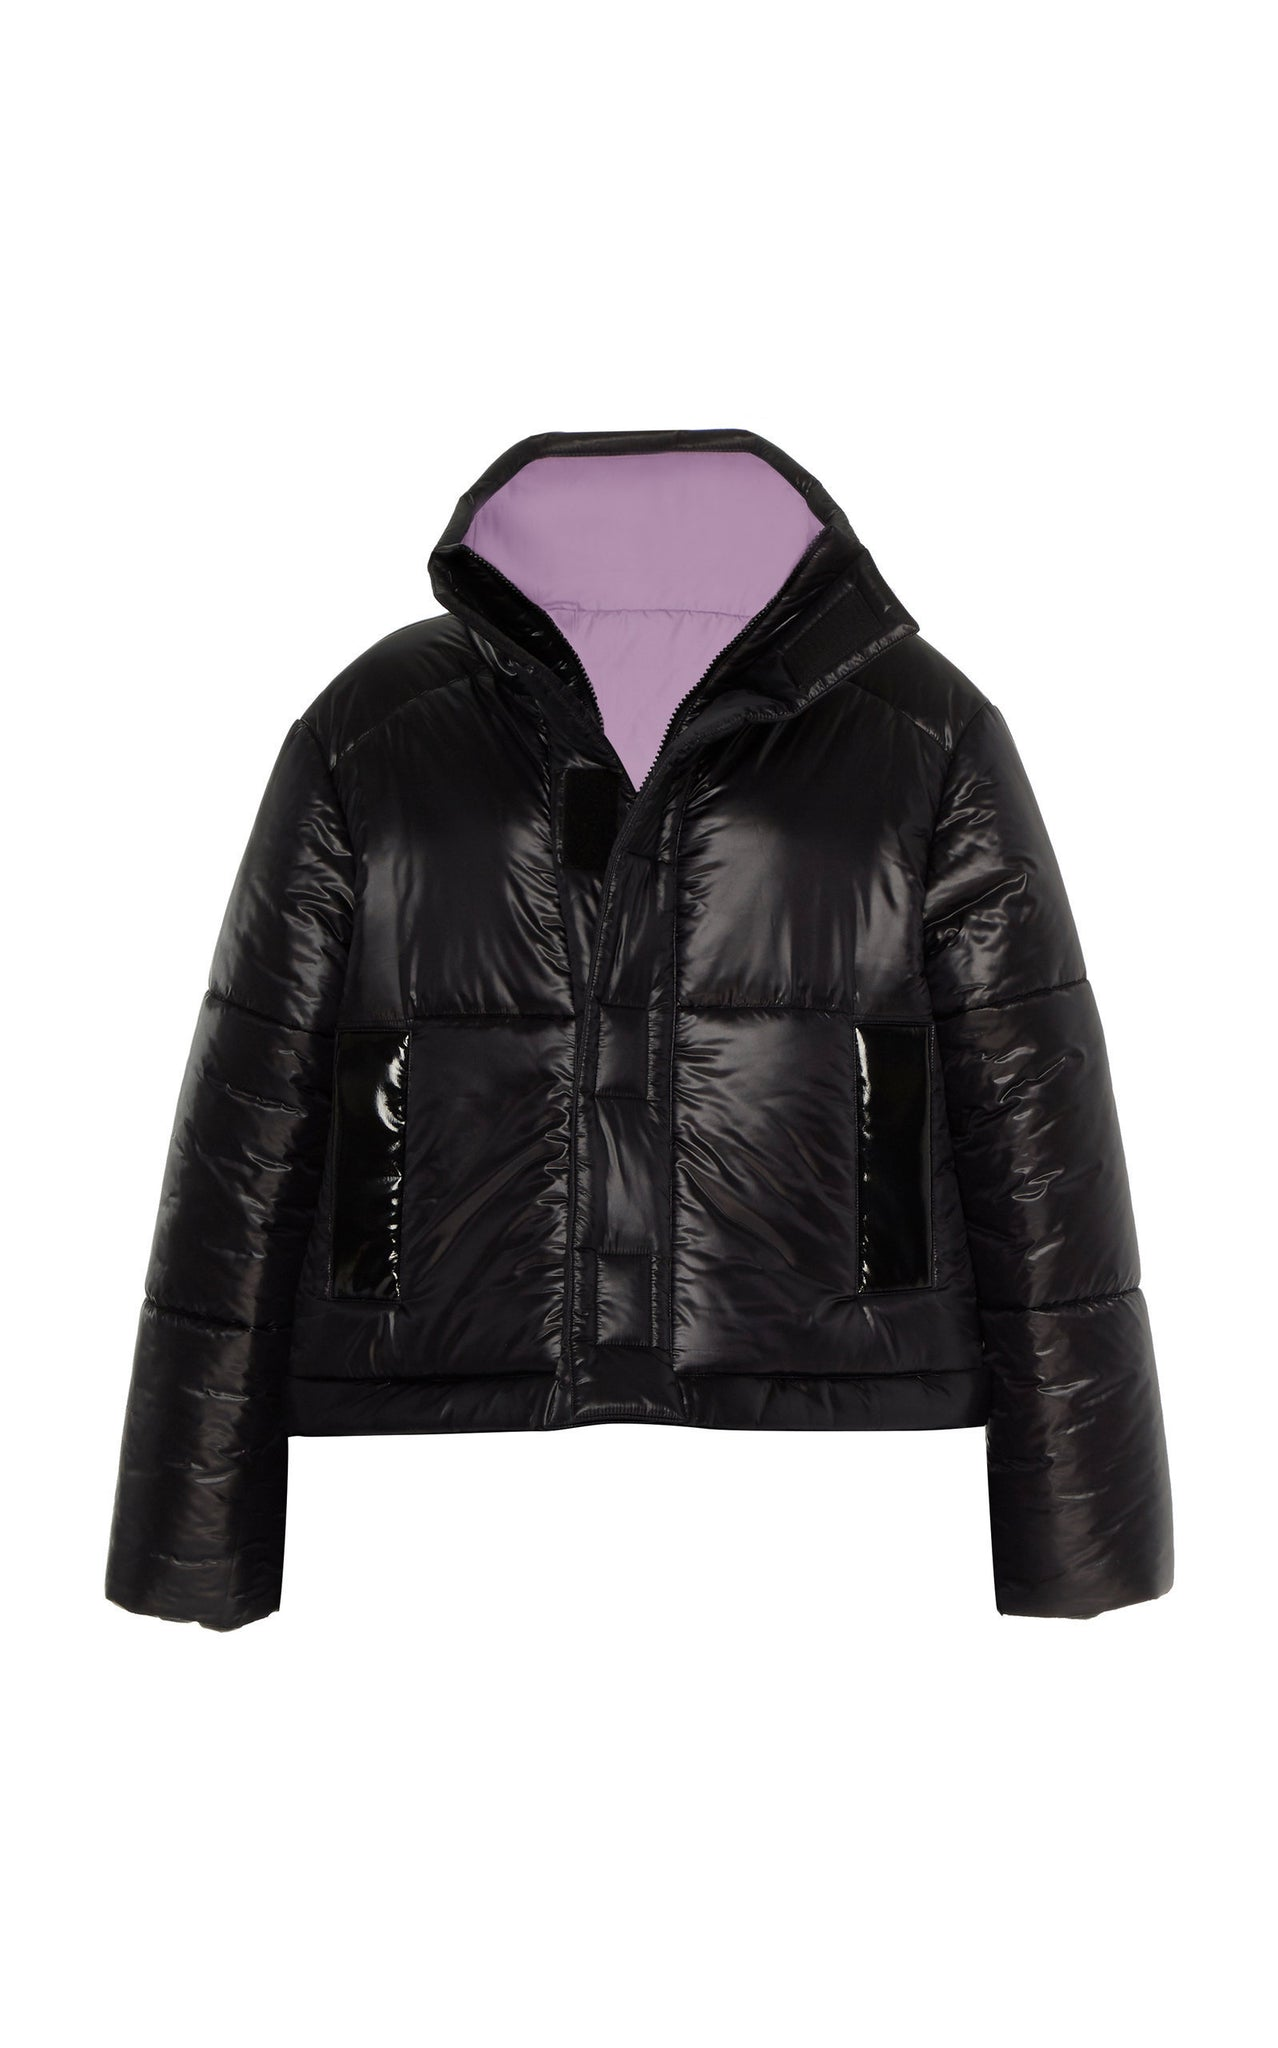 BLACK / LAVENDER REVERSIBLE CROPPED COAT